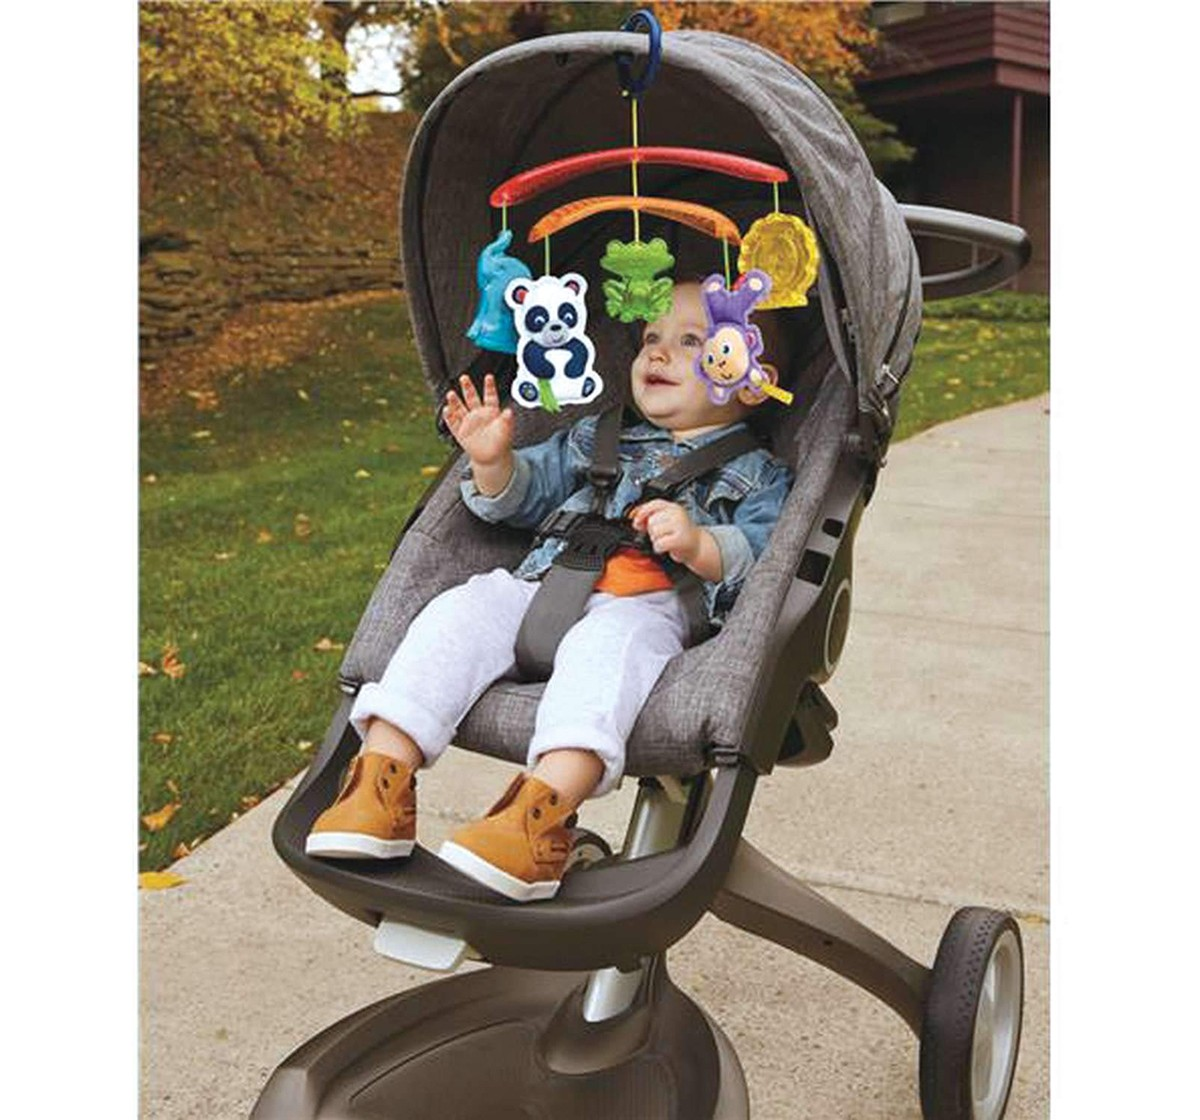 Fisher Price On-The-Go Stroller Mobile New Born for Kids age 12M+